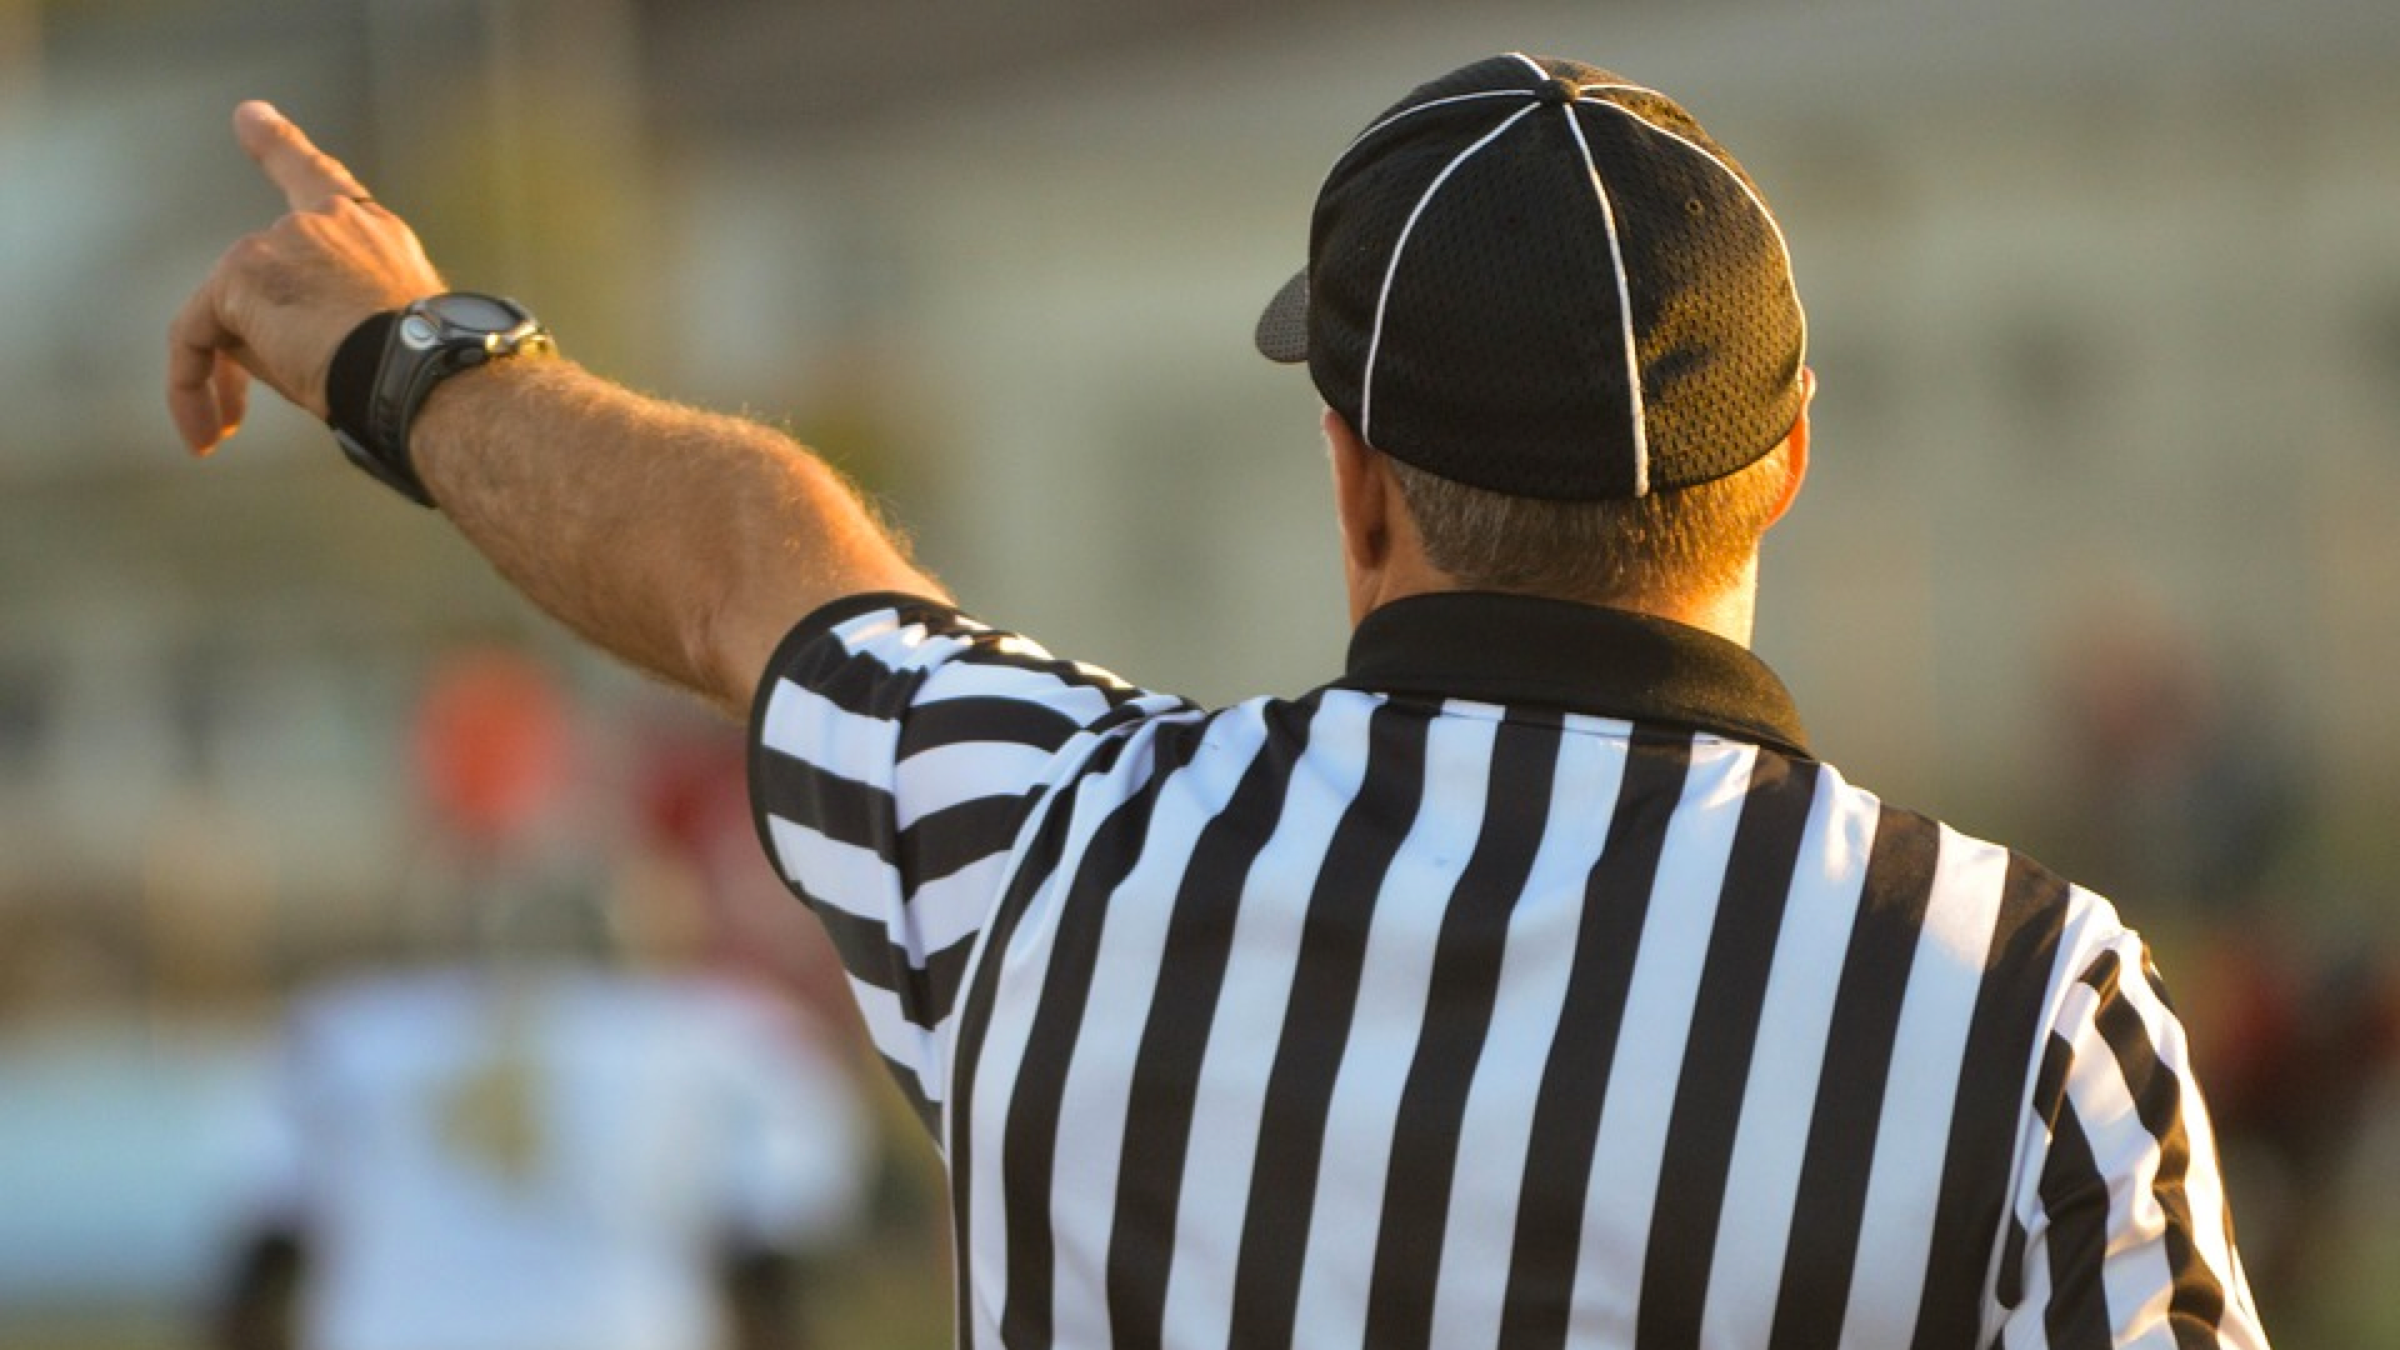 Sports referee in striped black and white shirt pointing